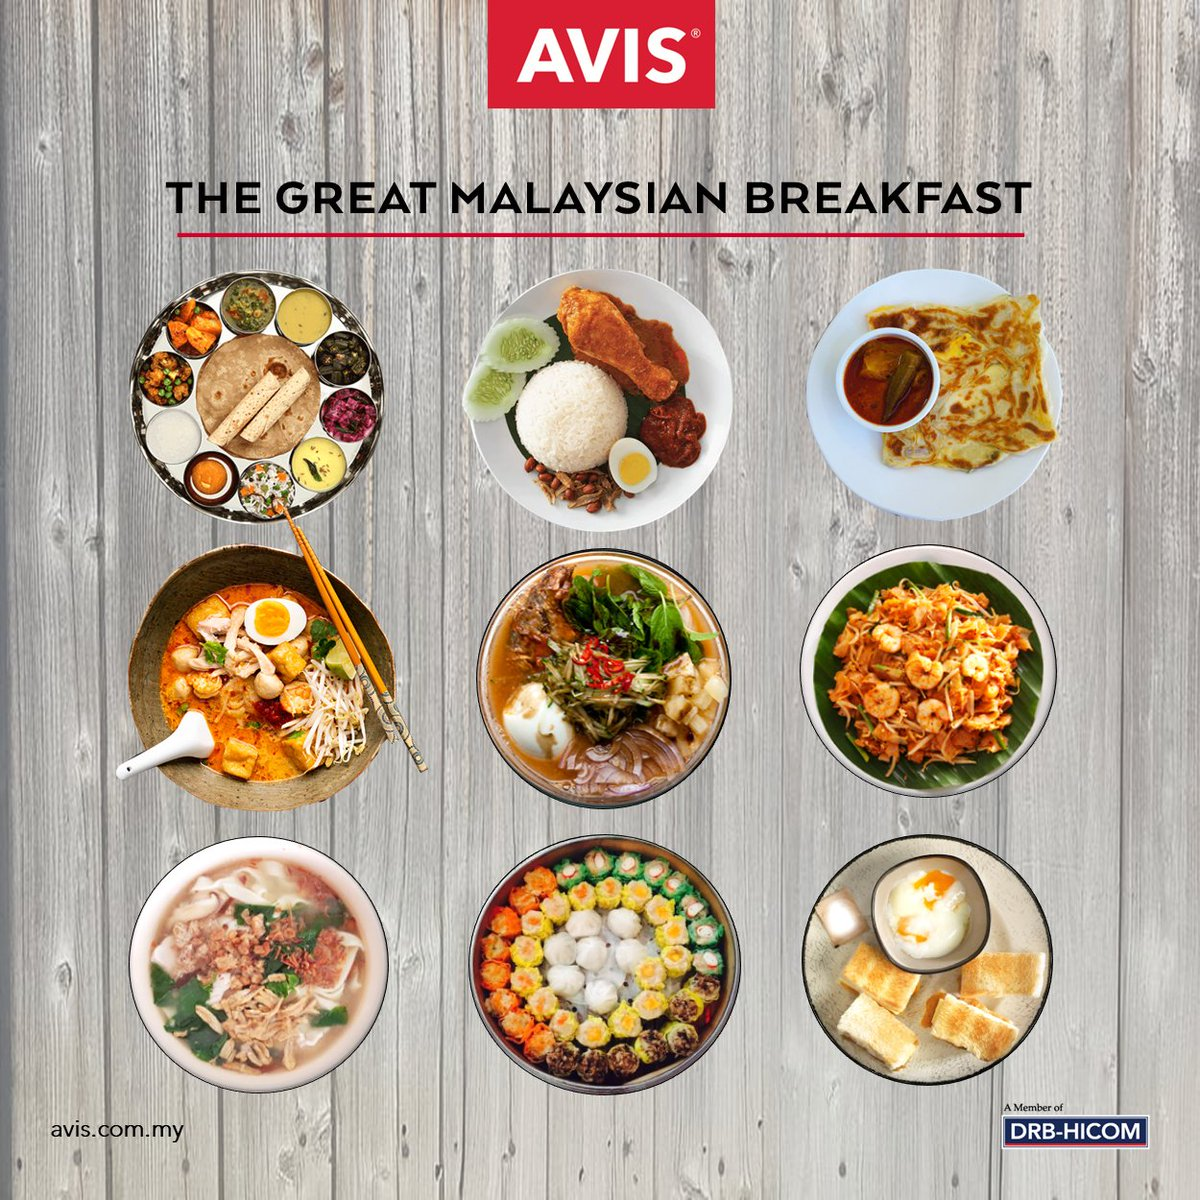 Are you having your breakfast now or still wondering what to eat?  Let us know in the comments below what is your favourite local food for breakfast?   #HappySaturday #HappyWeekend #Breakfast #Avis #MalaysiaTrulyAsia #StayAtHome #StaySafe